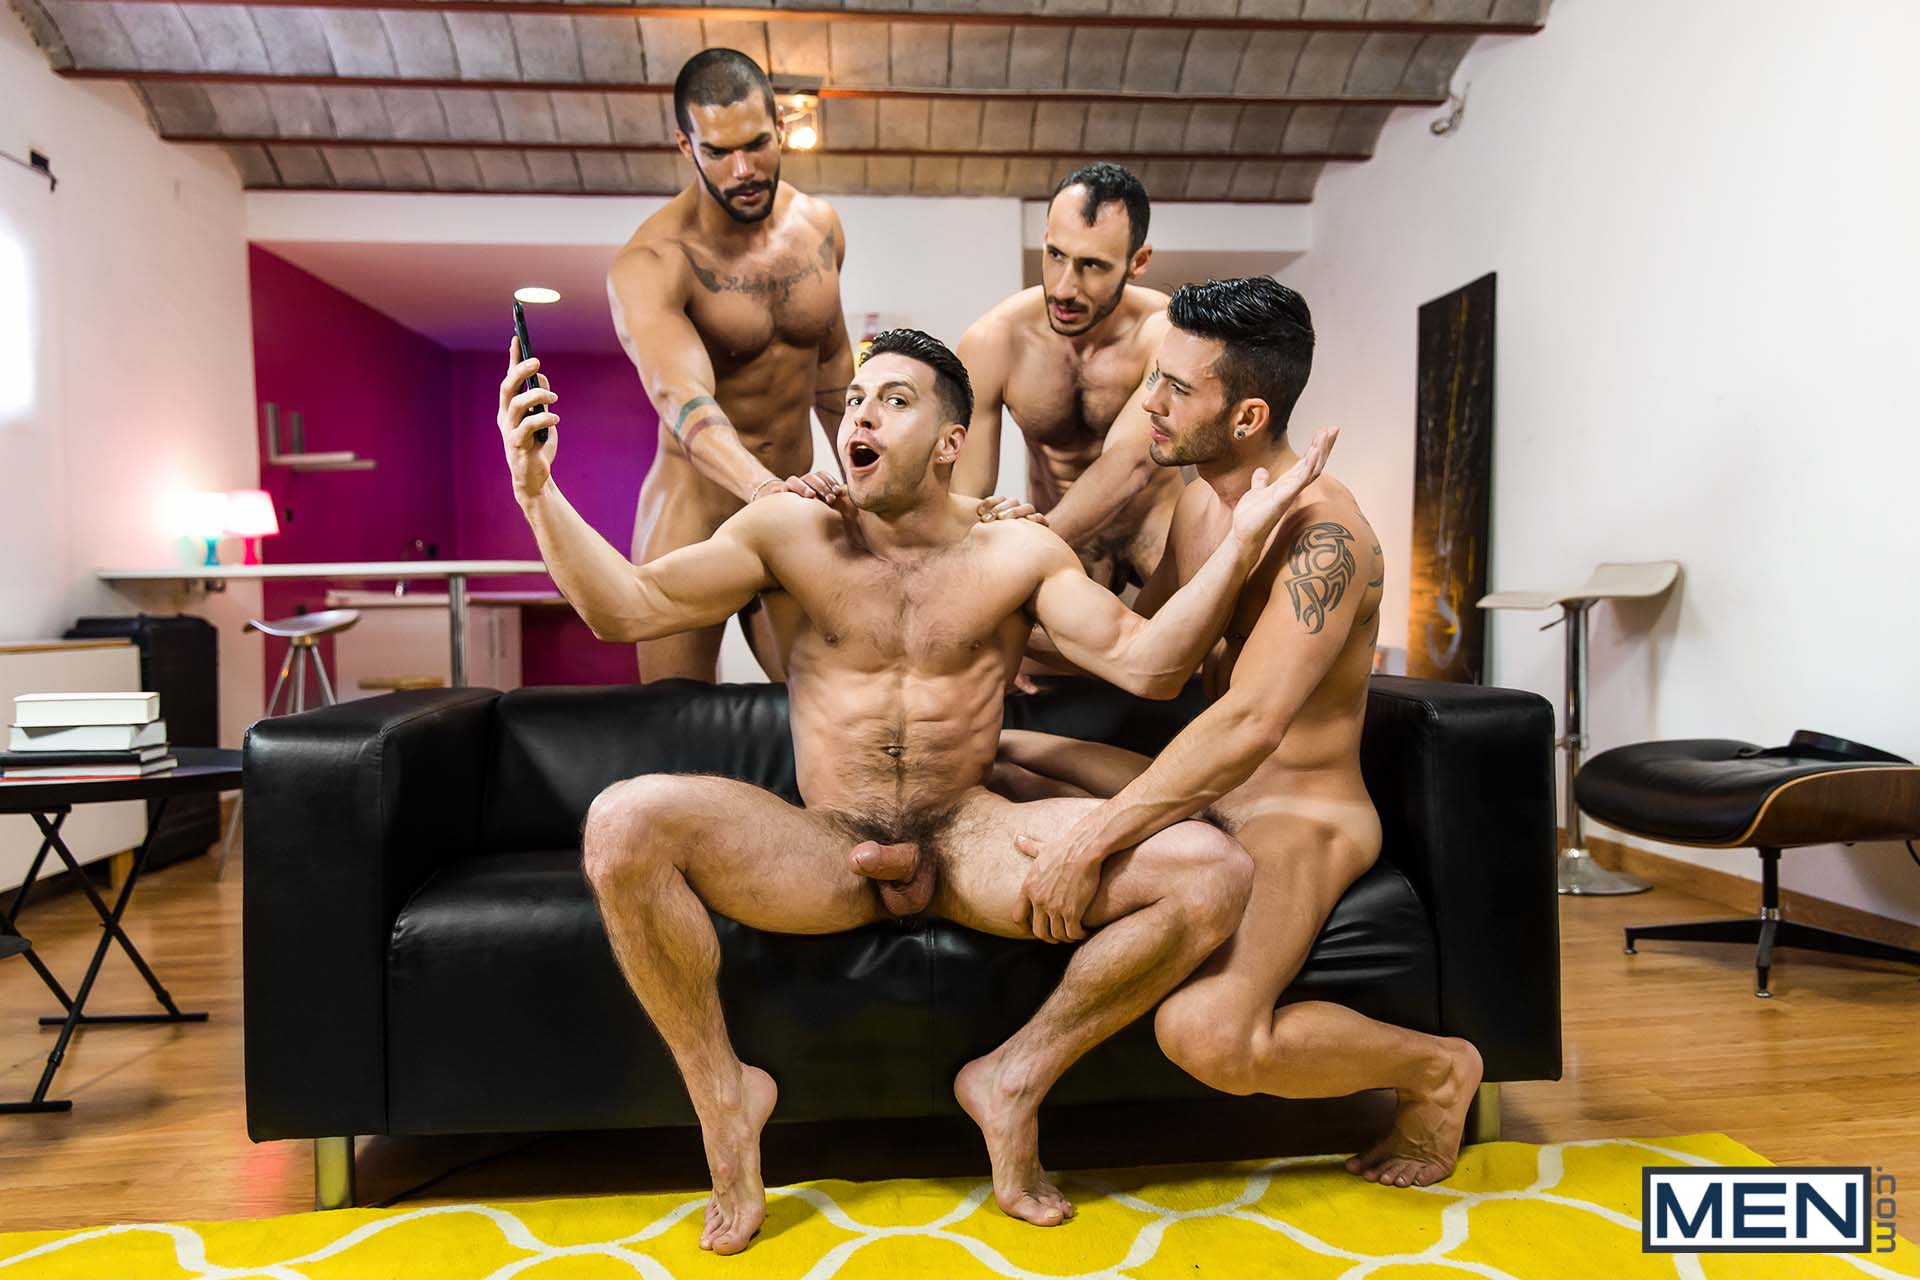 "Photo of Paddy O'Brian, Ely Chaim, Andy Star y Lucas Fox una polla para todos y todos los culos para uno en ""Hat Trick, Parte 3"" de Alter Sin 